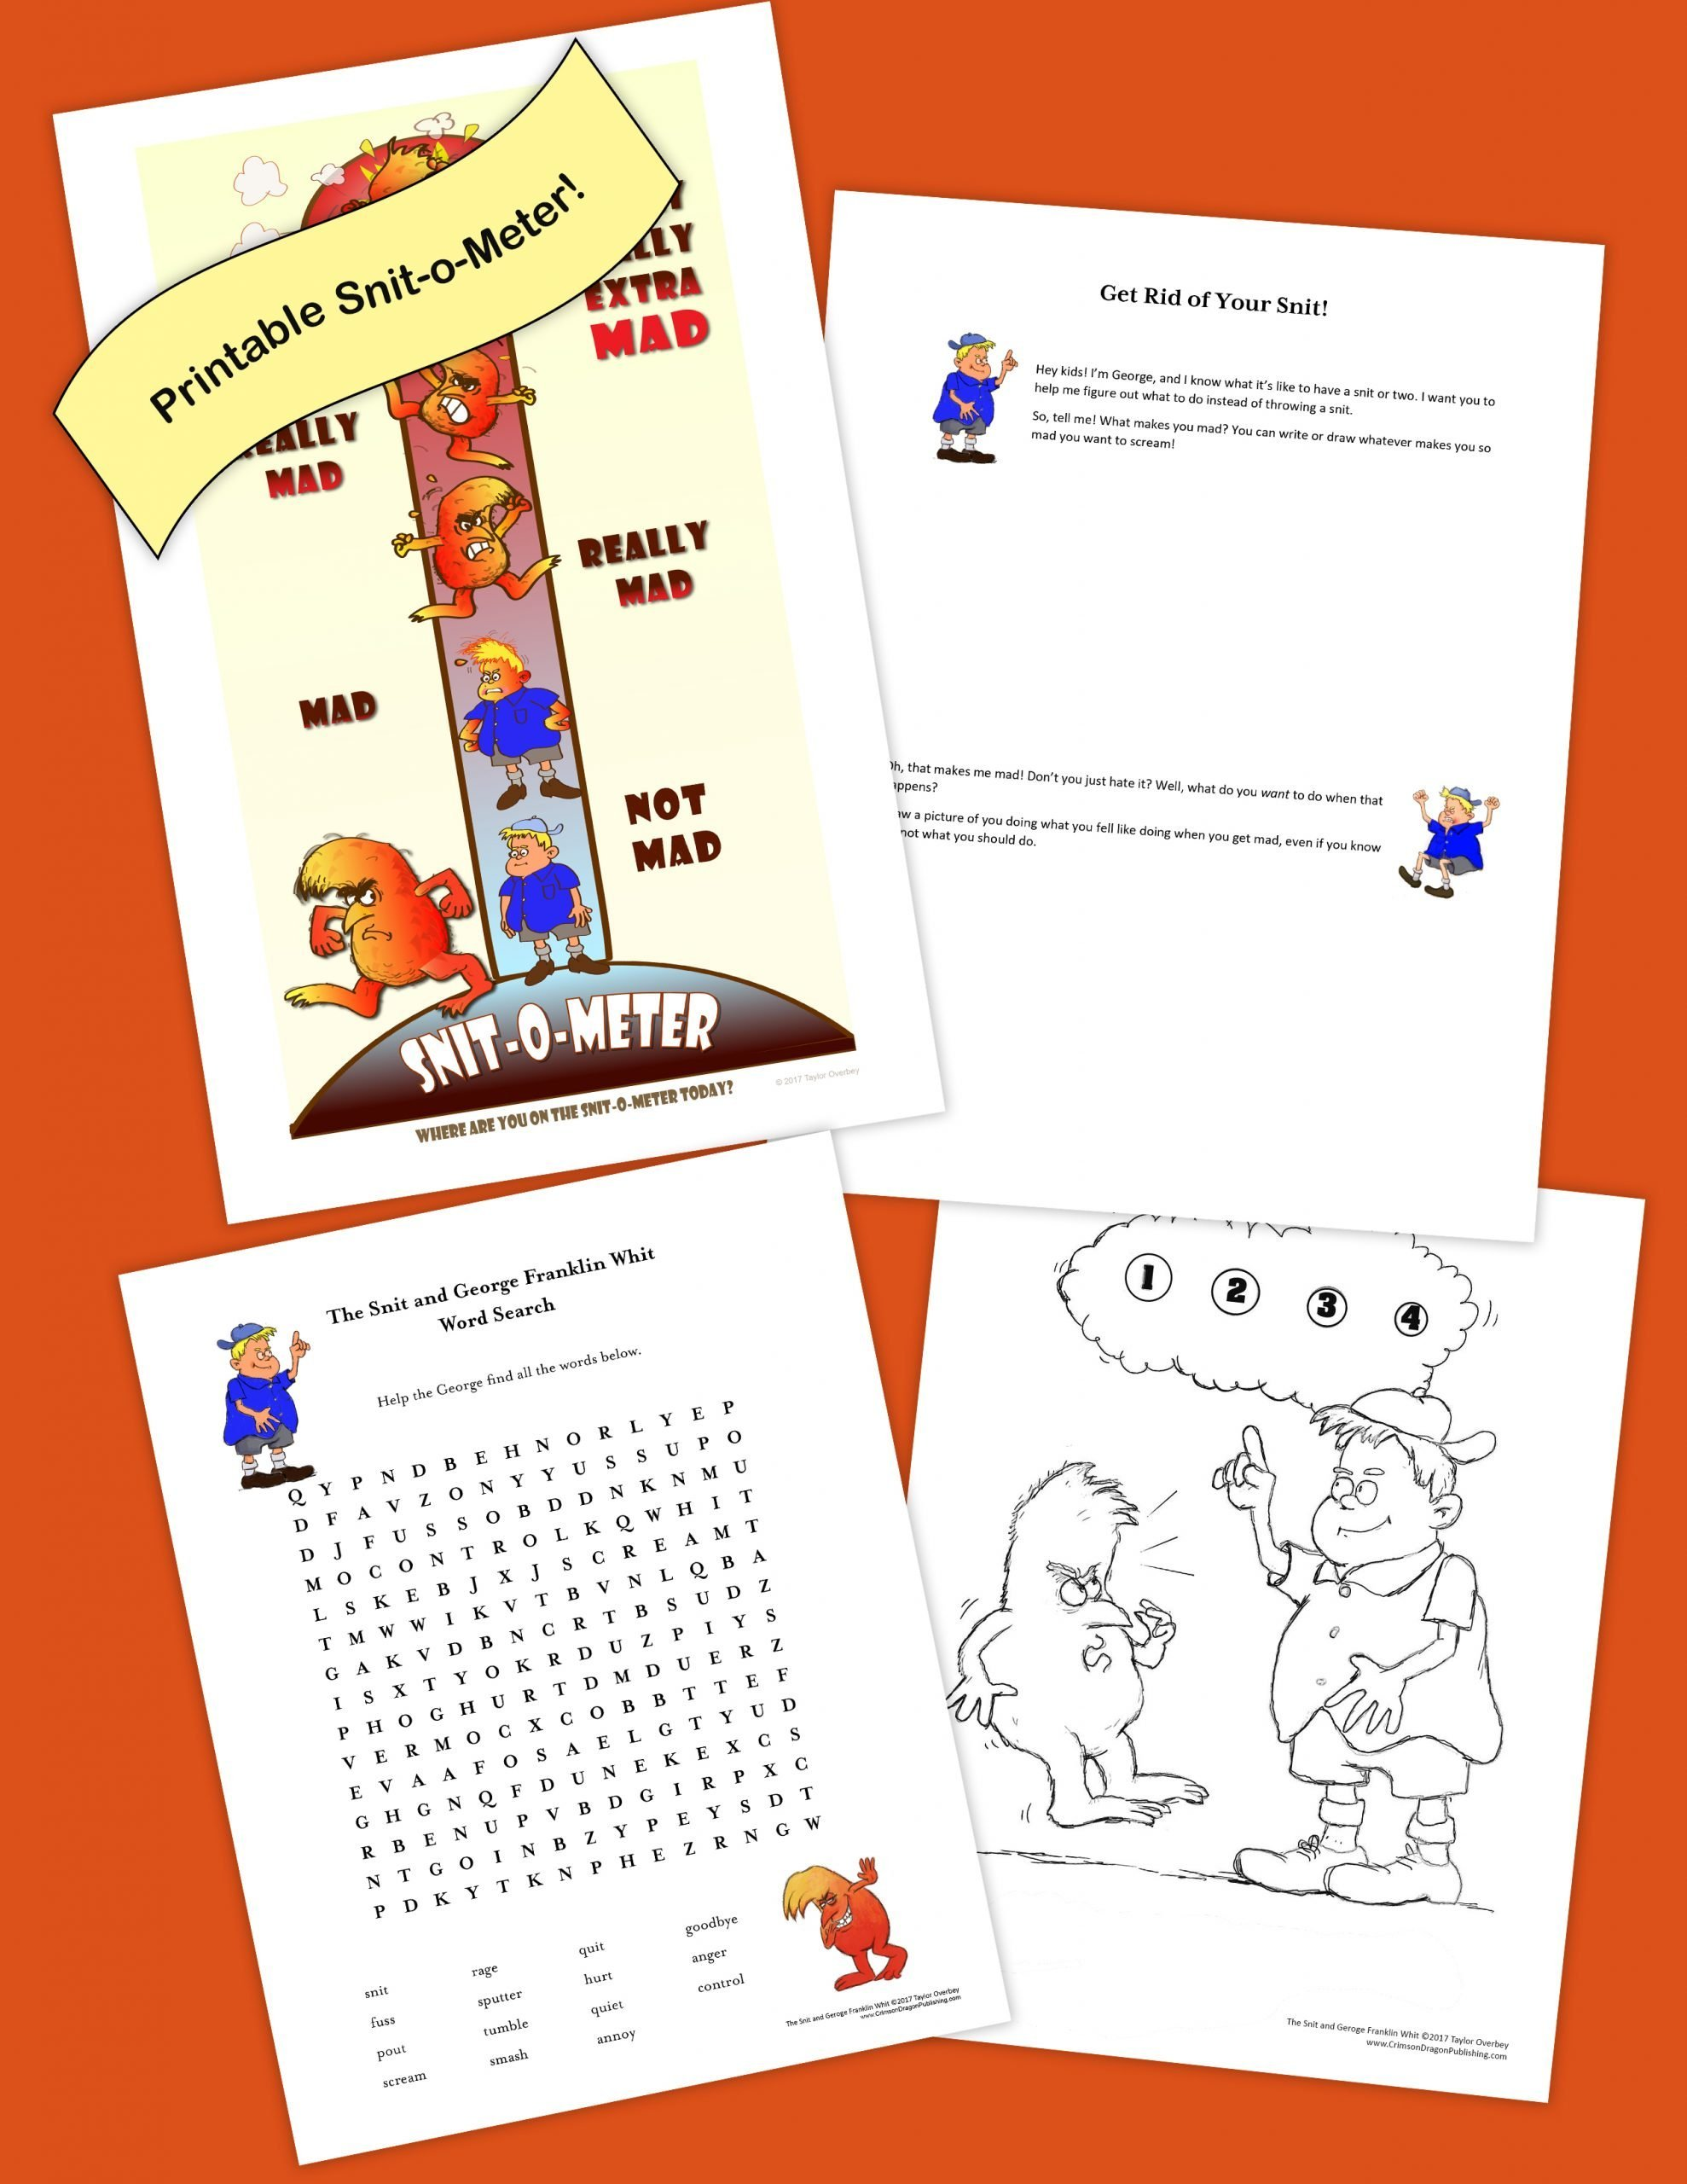 """The Snit and George Franklin Whit"" Activity Pack."